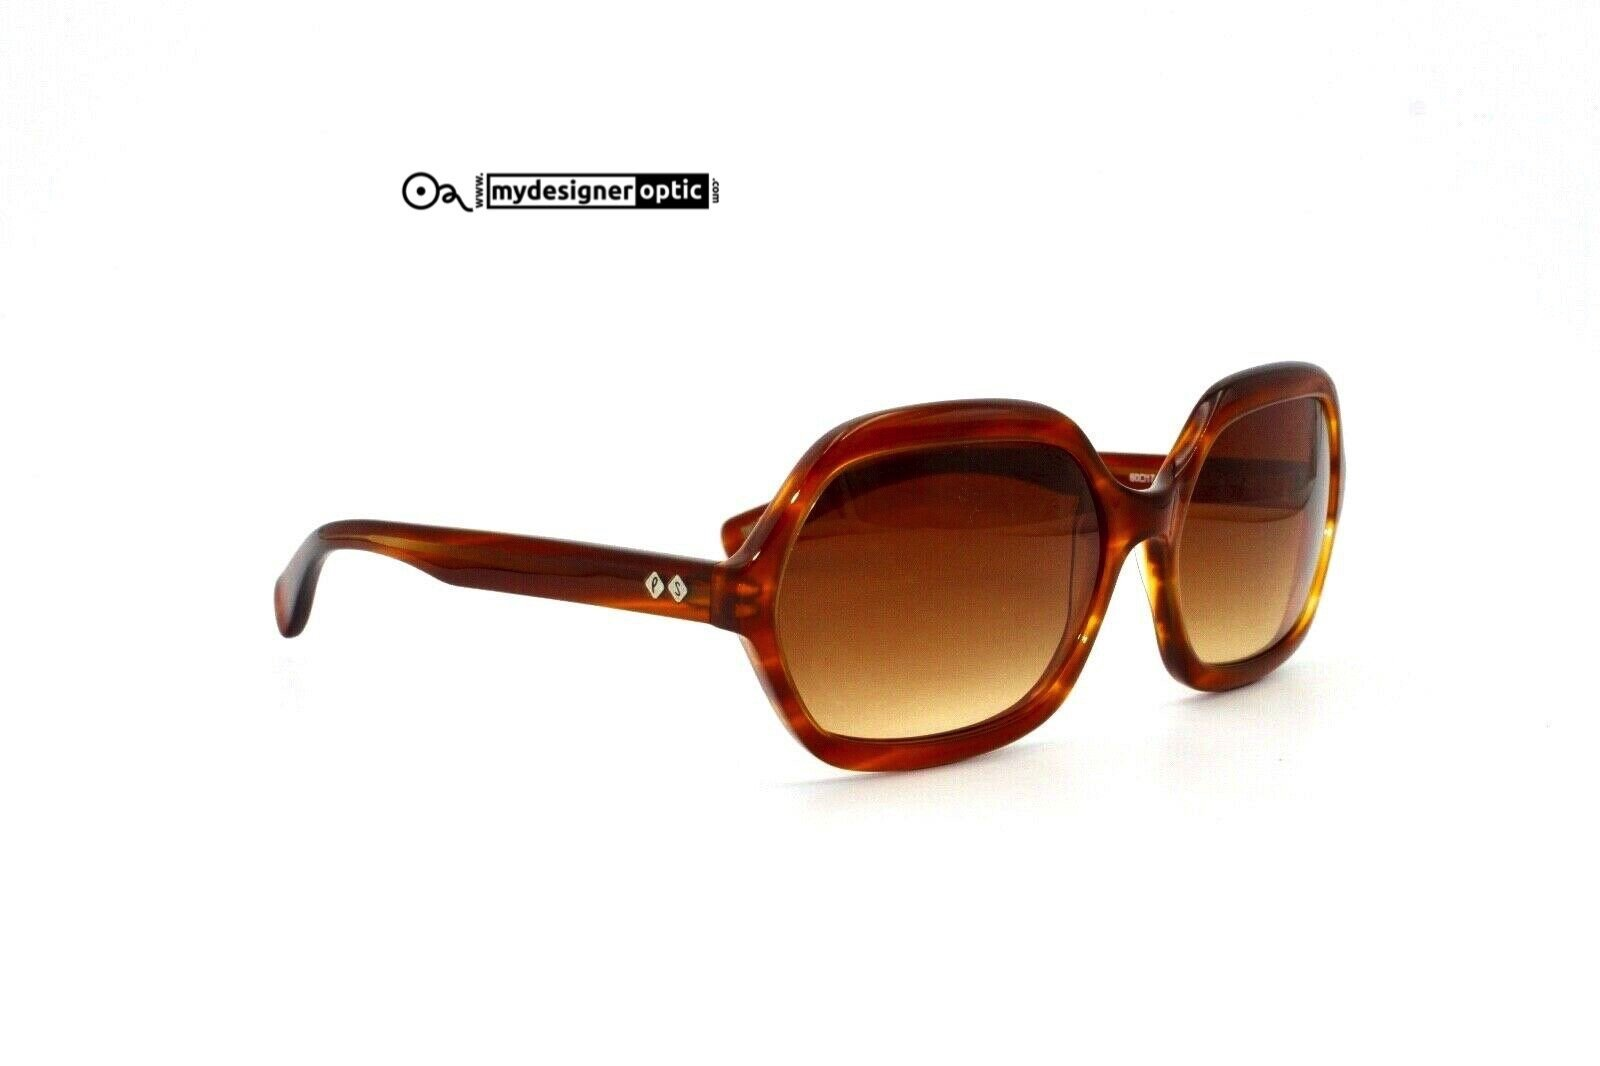 Paul Smith Sunglasses Westbourne KWT 60-17-137 Limited Edition Made in Japan - Mydesigneroptic